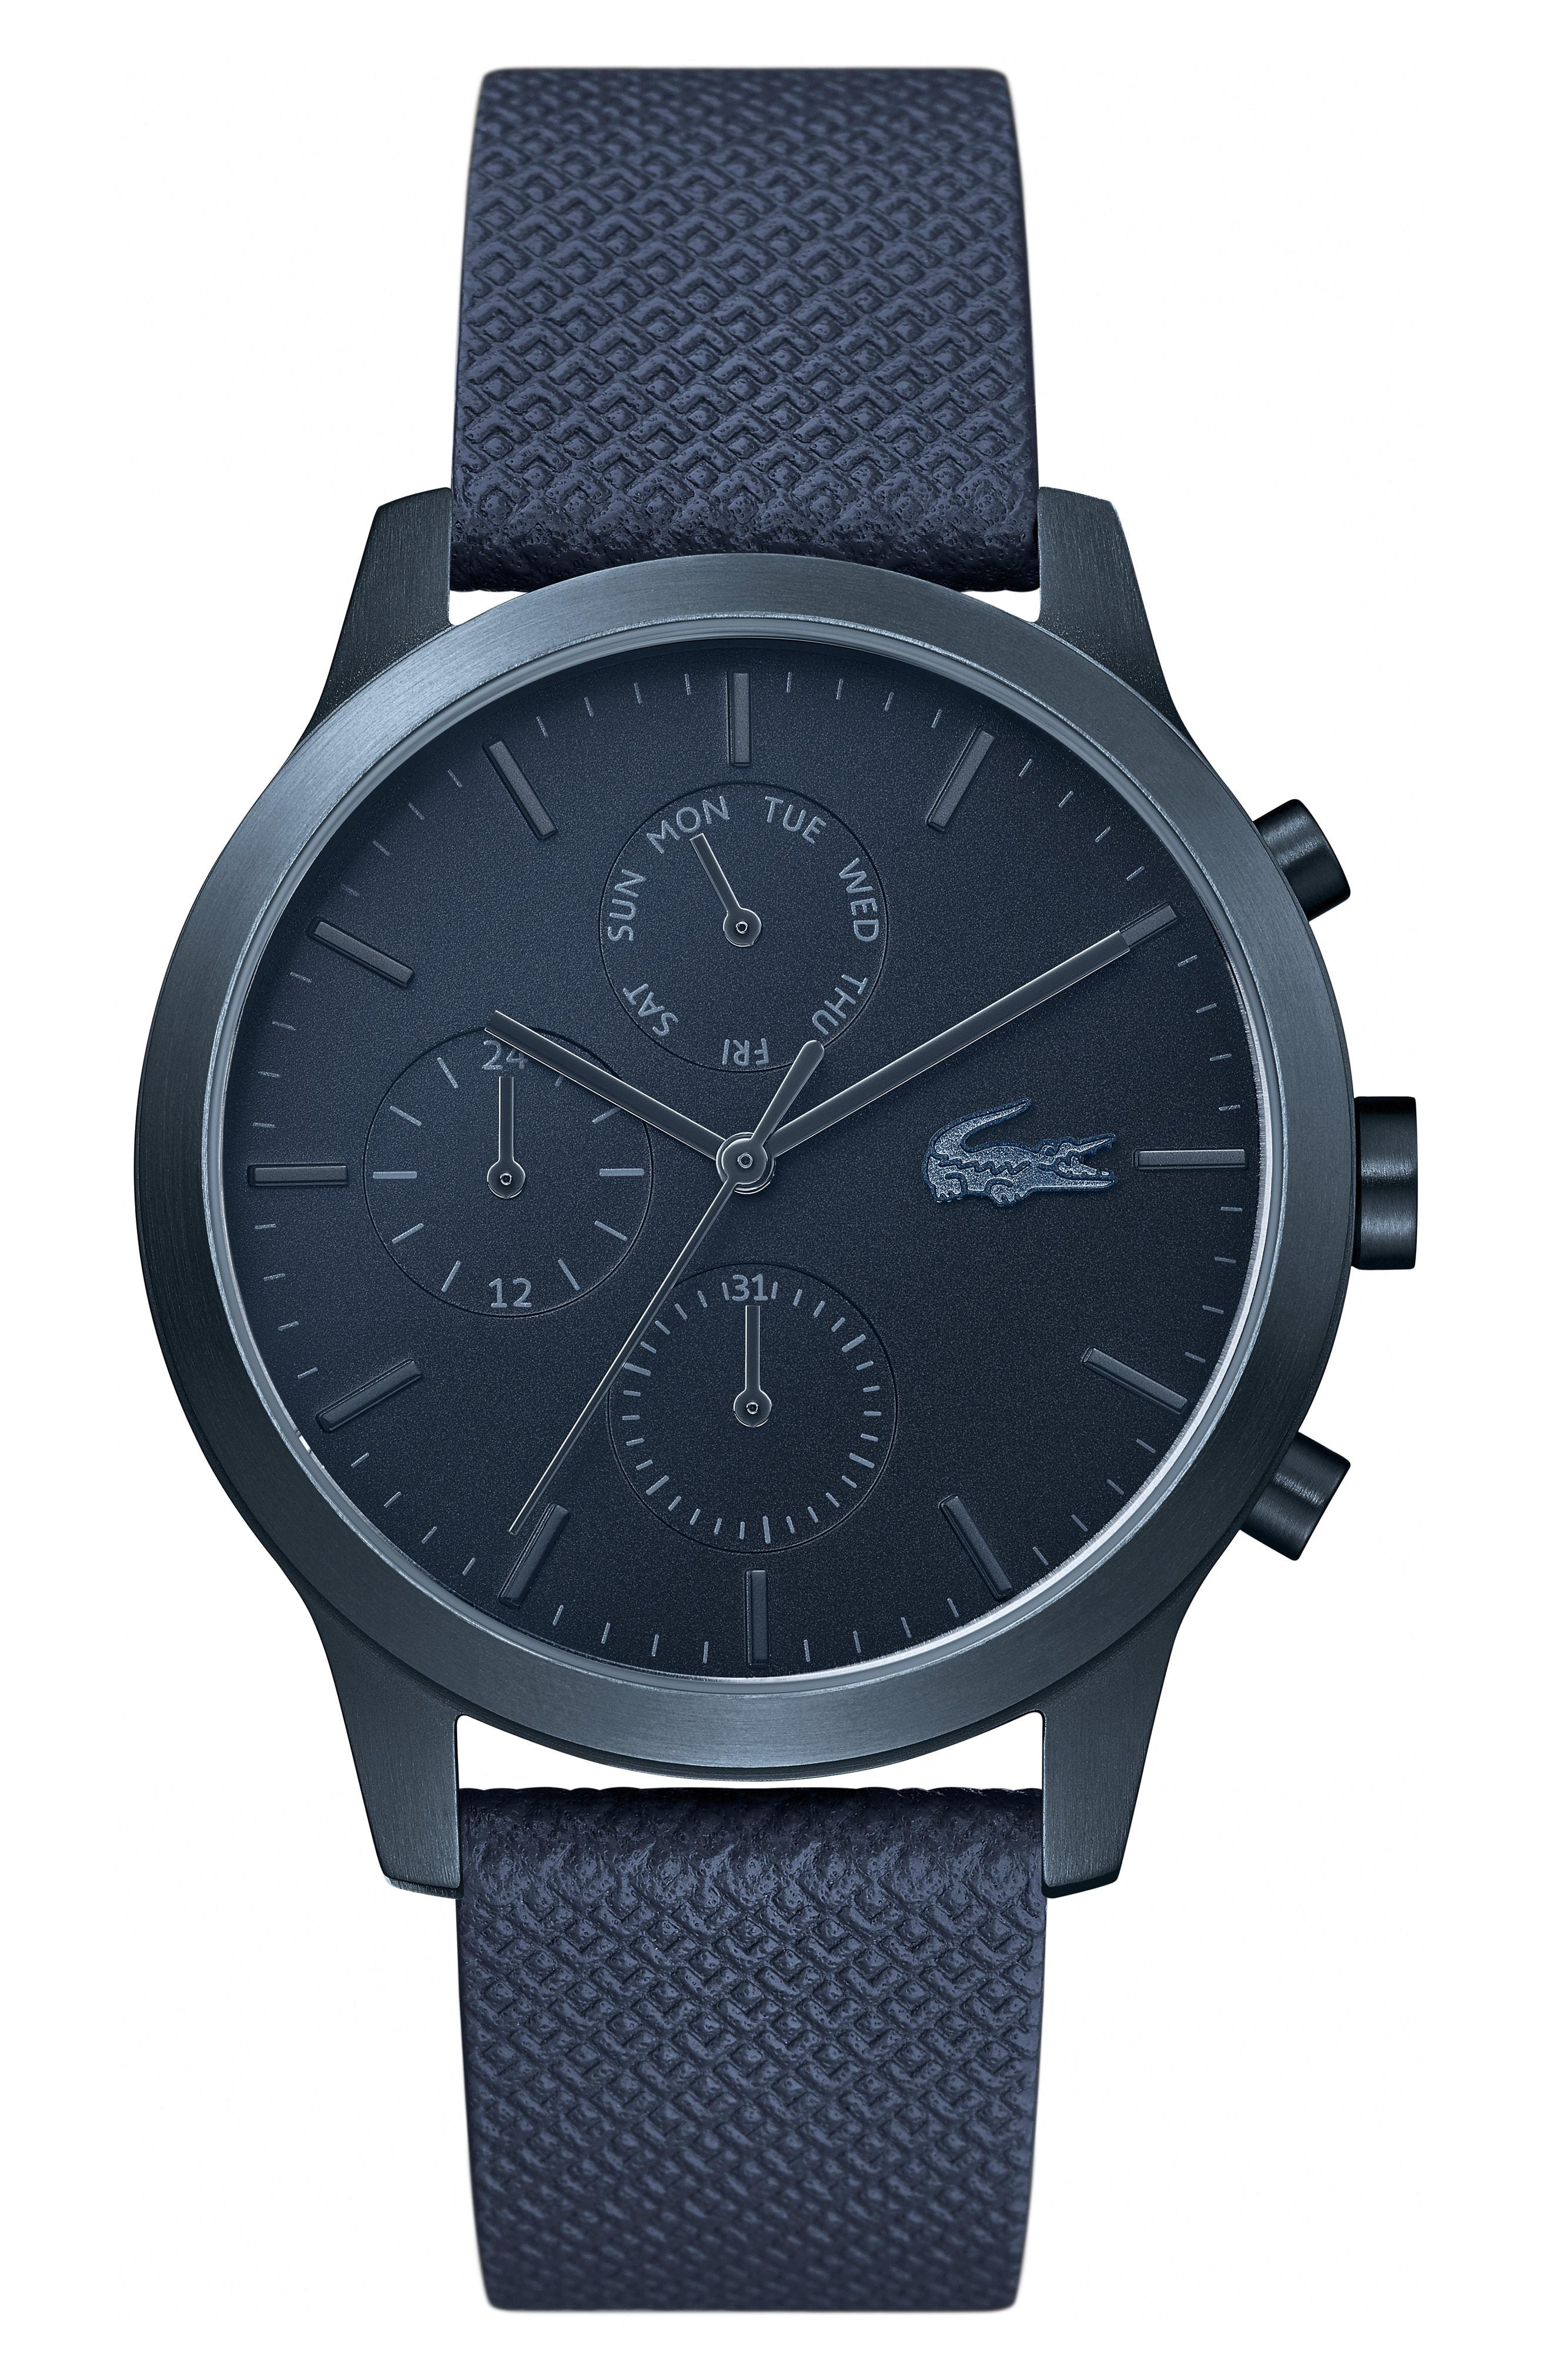 Lacoste. Men's Blue 12.12 Premium Chronograph Leather Strap Watch